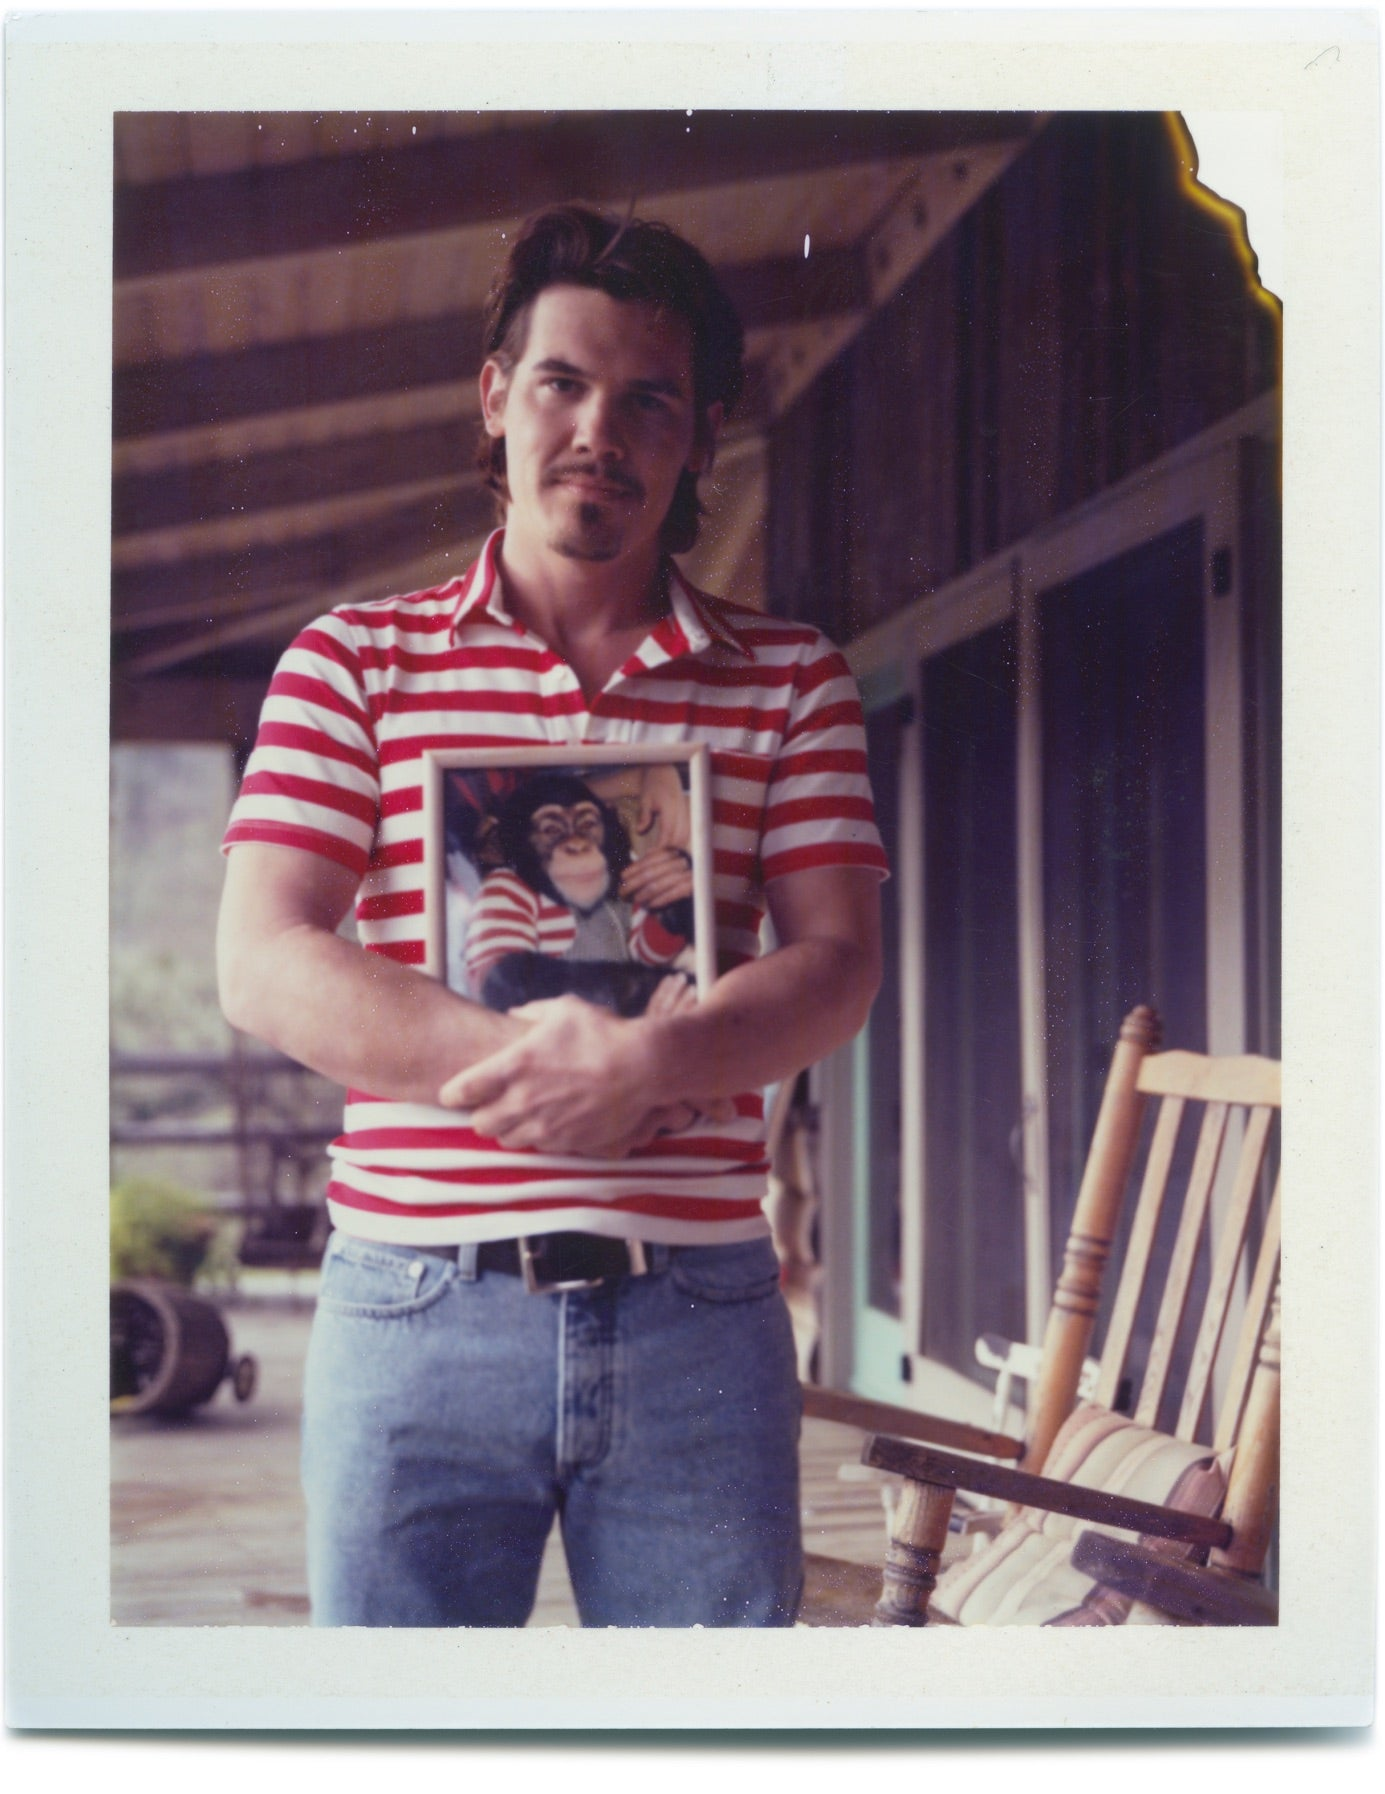 Josh Brolin - Original Polaroid by Dewey Nicks